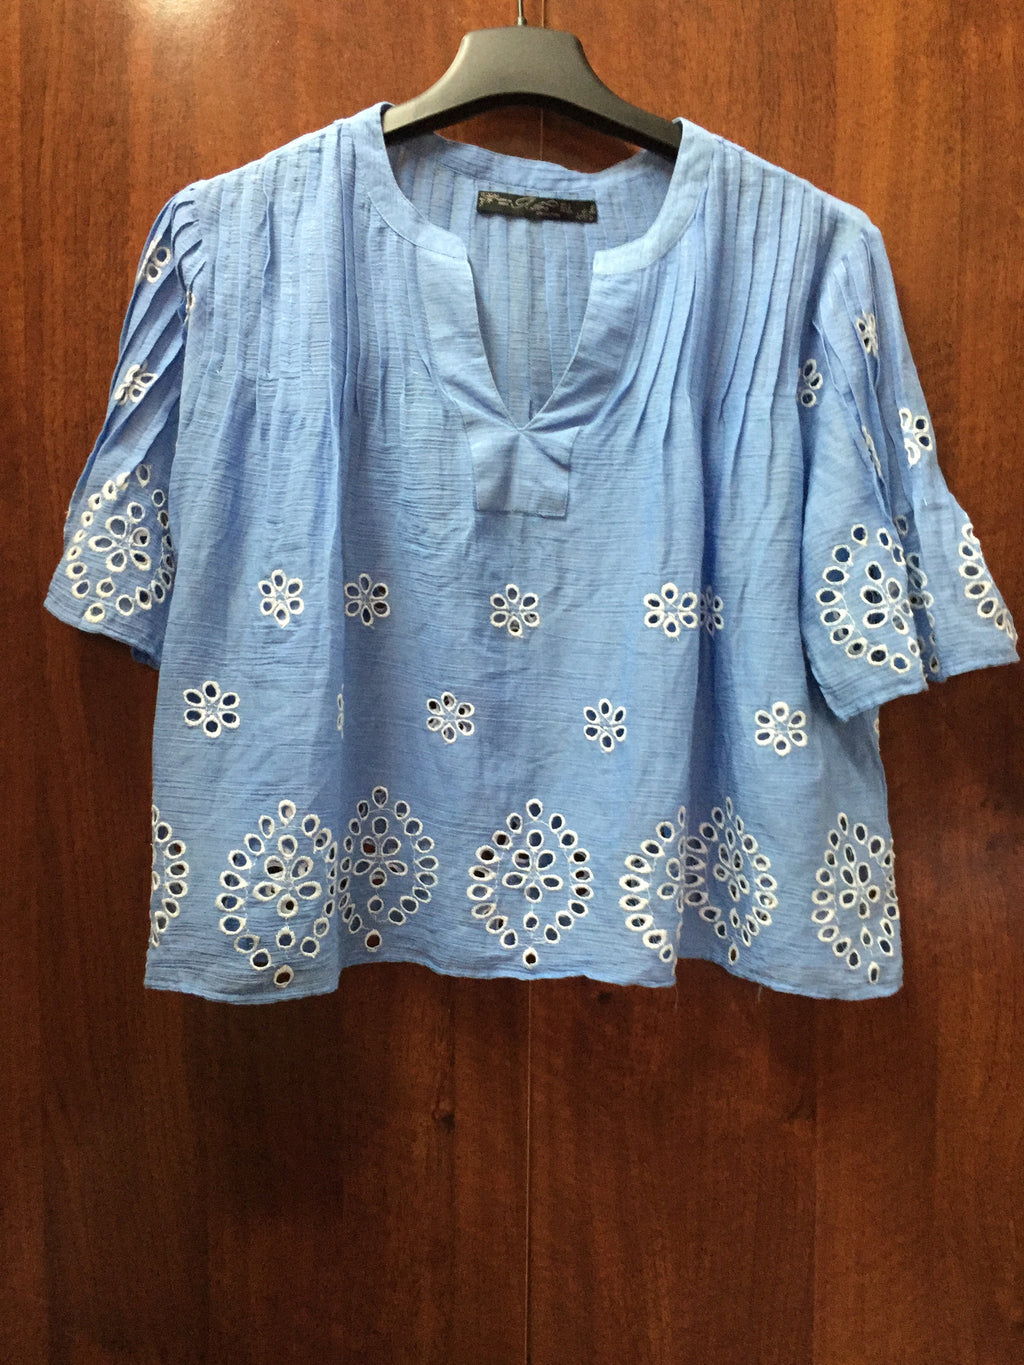 Stylish Blue Short Top - #FTFY - For The Fun Years